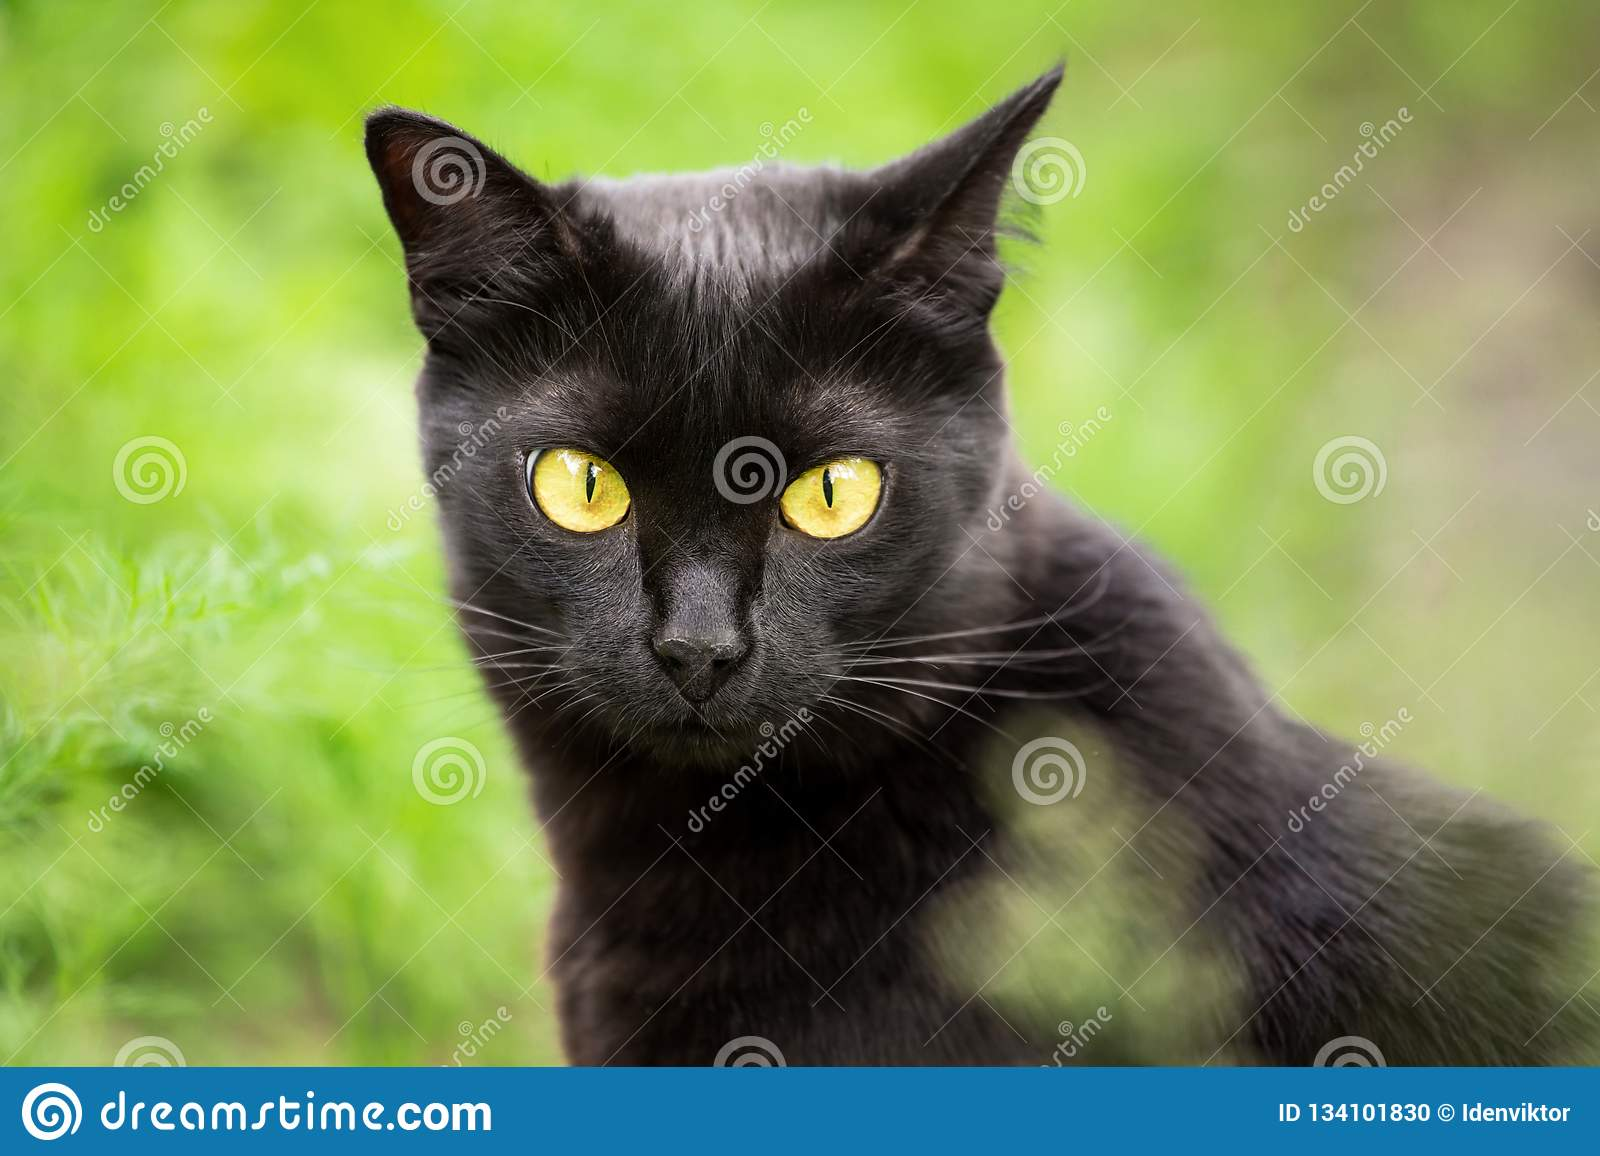 Beautiful Cute Black Cat, Kitty Portrait Outdoor In Nature ...